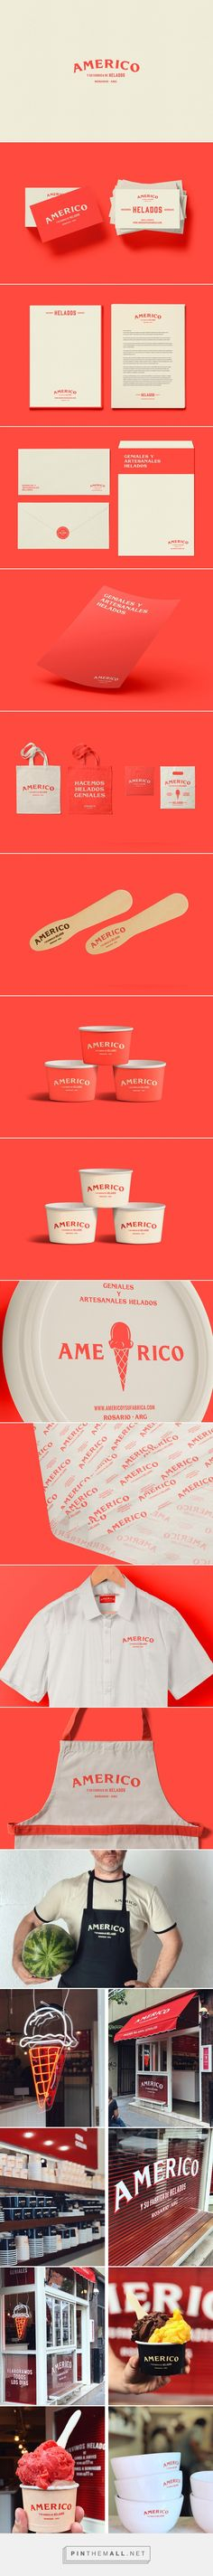 Américo y su fábrica de helados on Behance... - a grouped images picture - Pin Them All